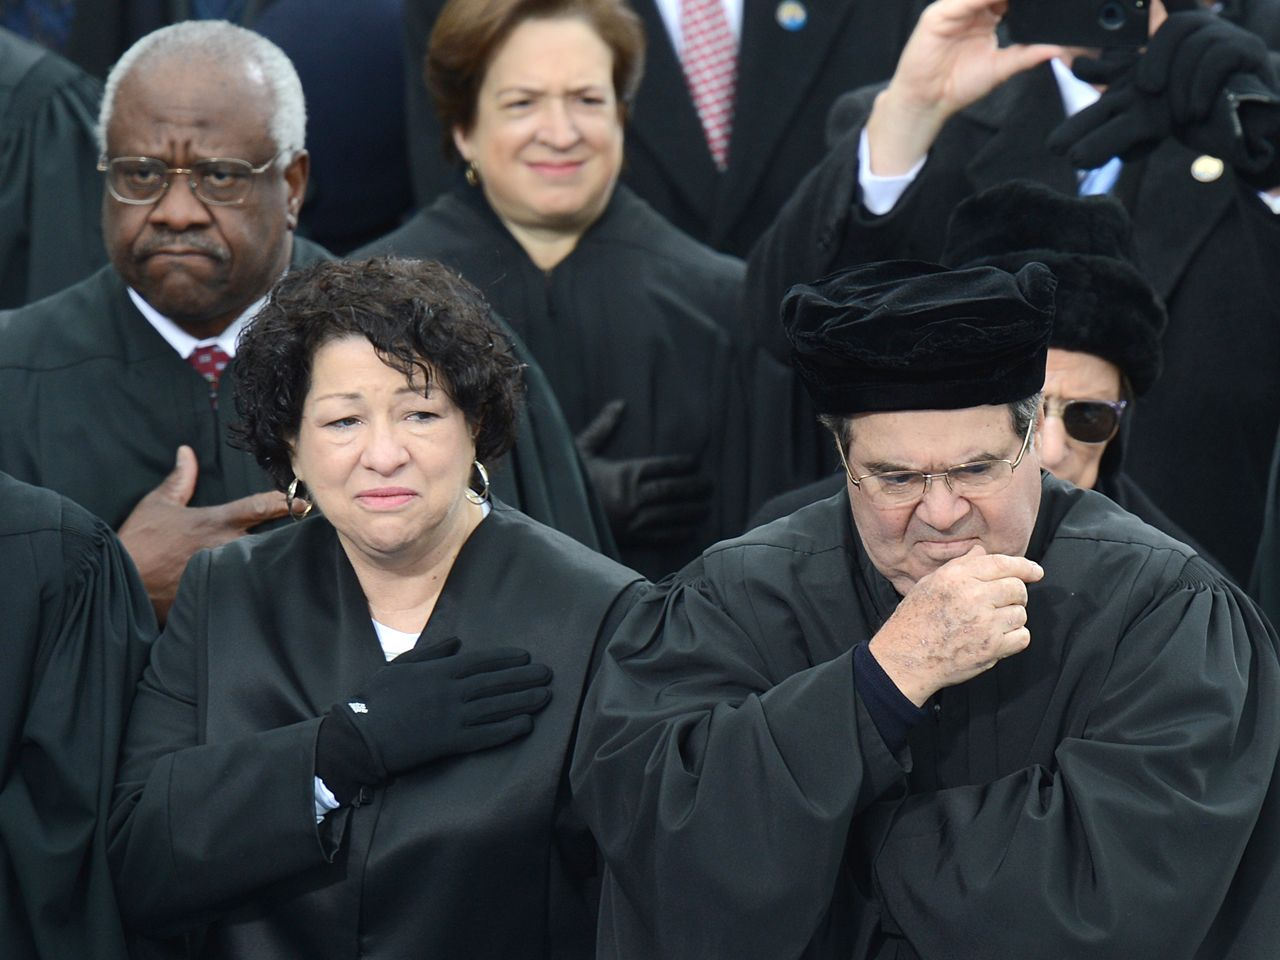 ... Supreme Court. Forget Aretha! Scalia s hat draws attention at 2013  inauguration f0fedf55016